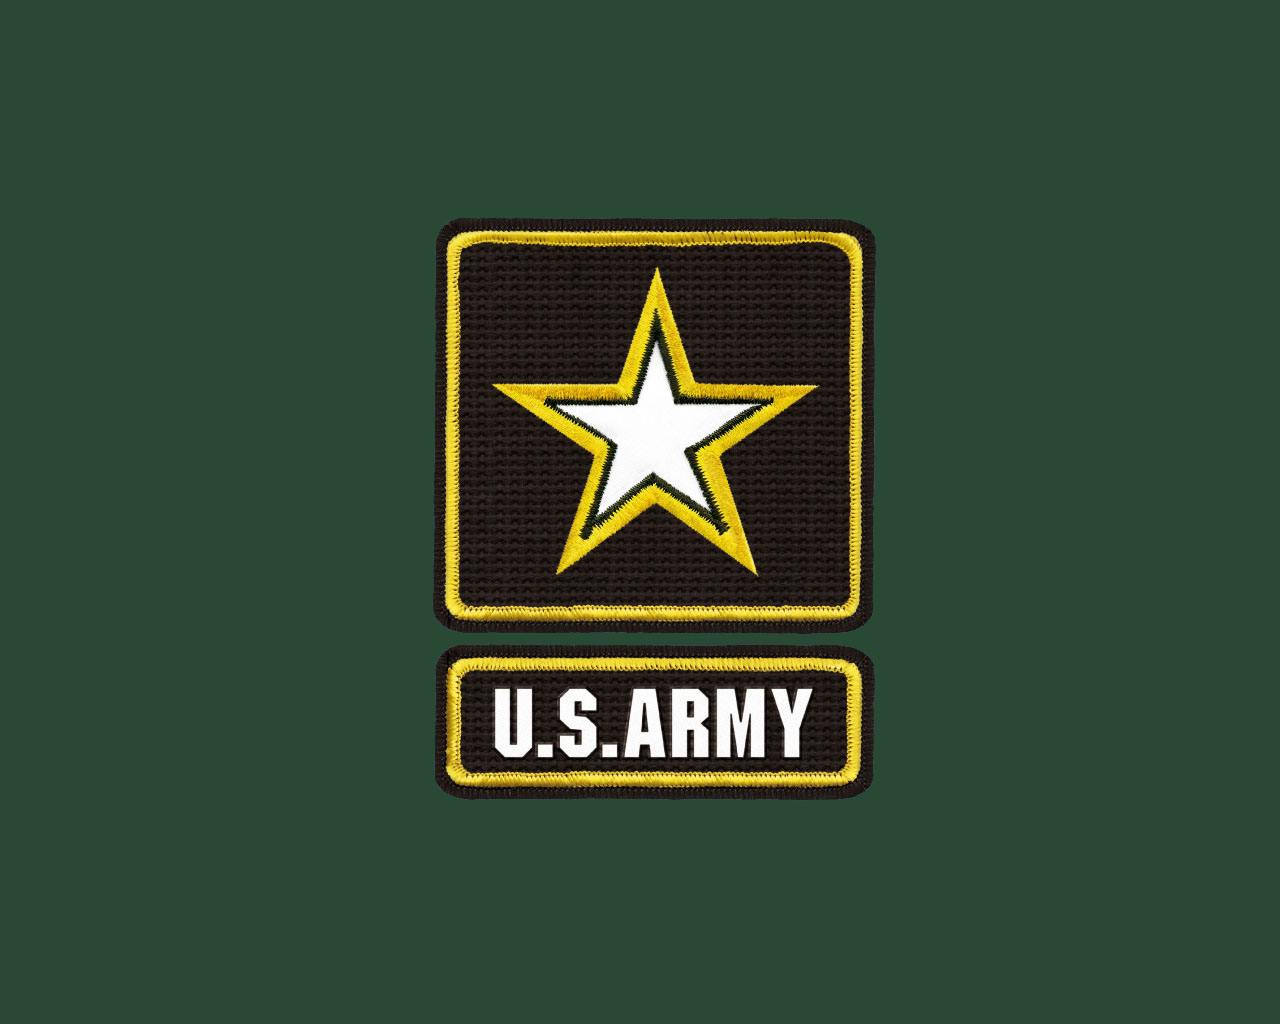 US Army Wallpaper Backgrounds - Wallpaper Cave